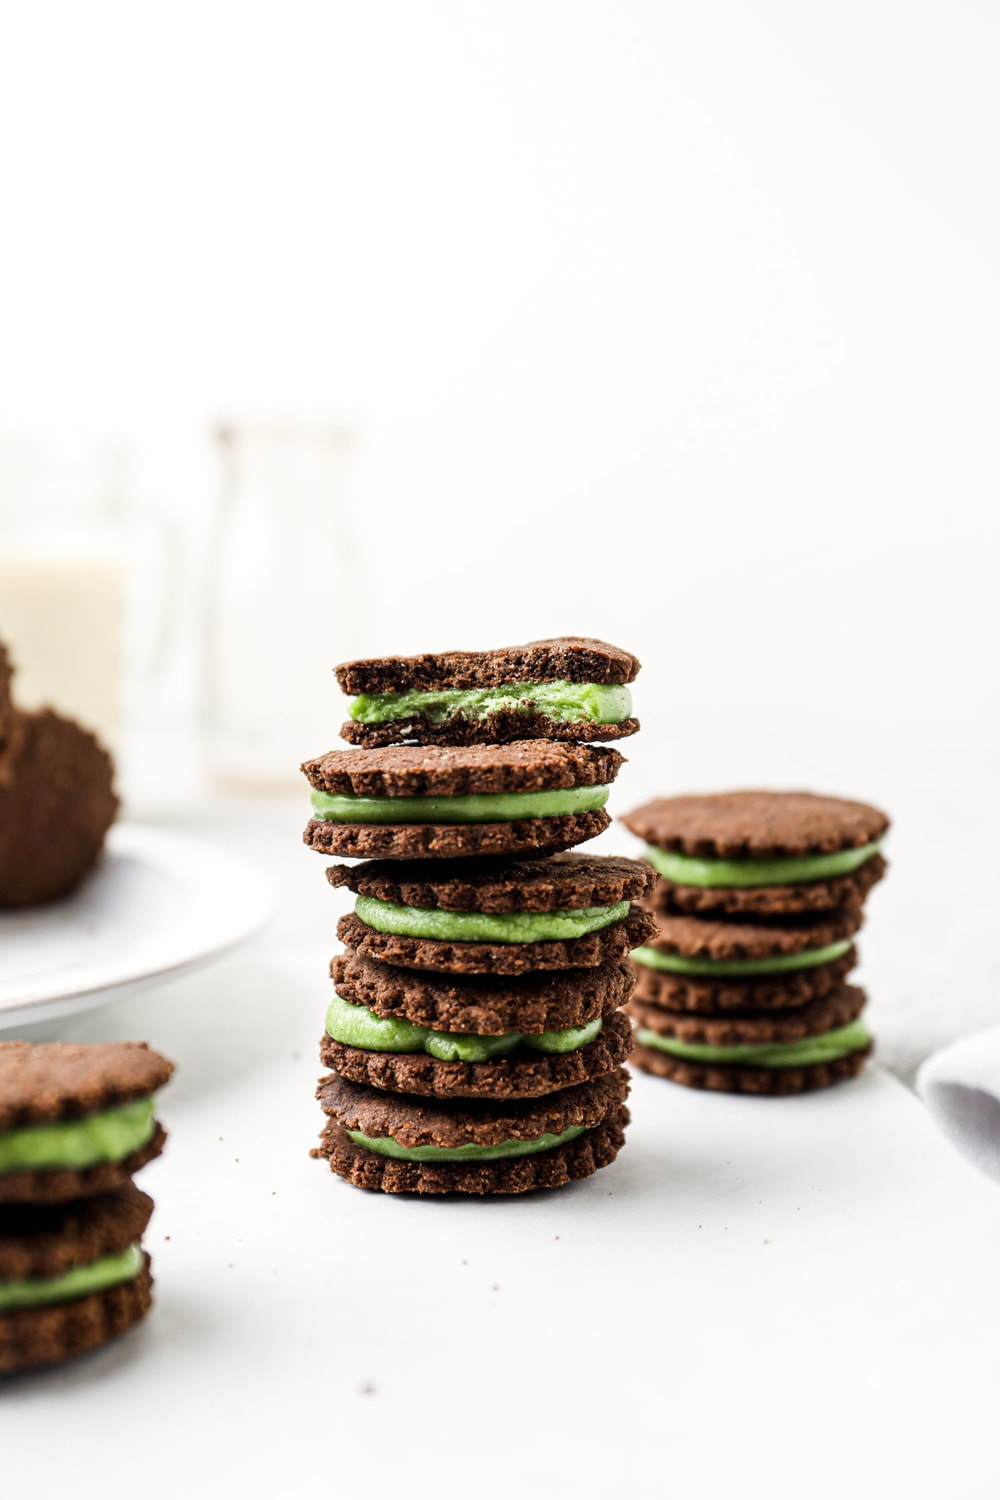 A stack of vegan oreos with mint filling.